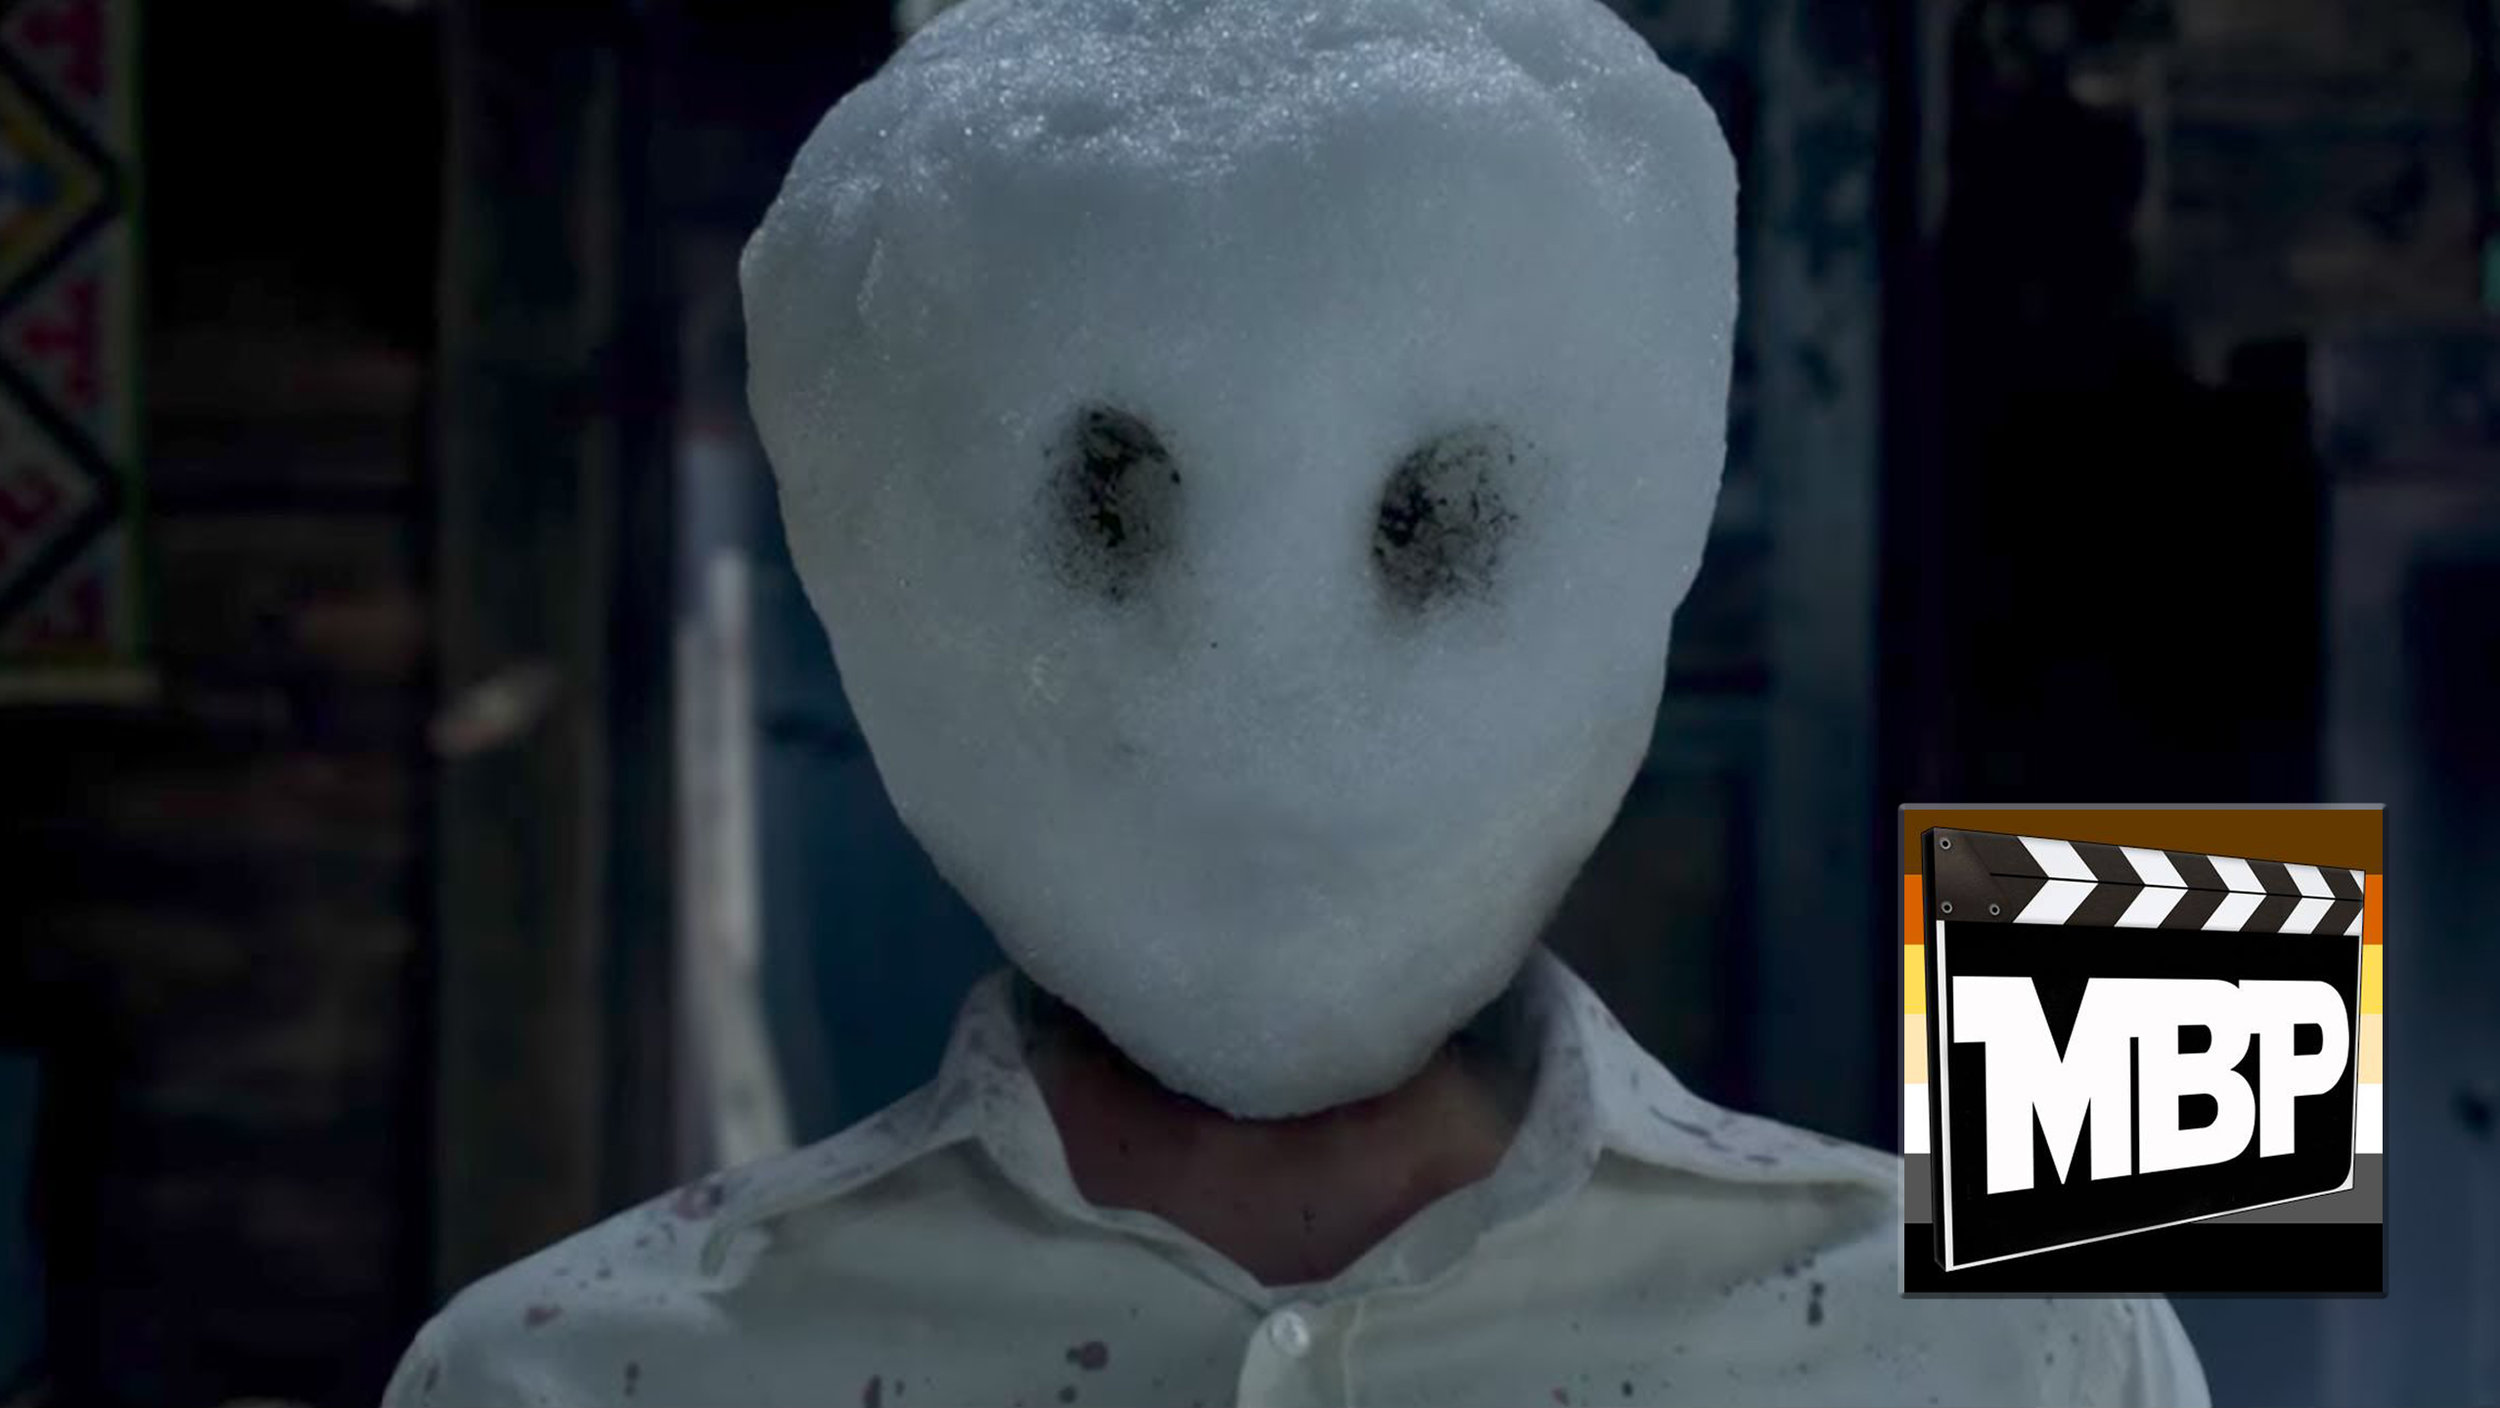 MBP e257 - 'The Snowman' (10/27/17)    This sure ain't Frosty the Snowman! On this week's episode of the Movie Bears Podcast, we review the serial killer / thriller flick 'The Snowman.' Did this melt our hearts? Or should it just melt away? Click through to listen!